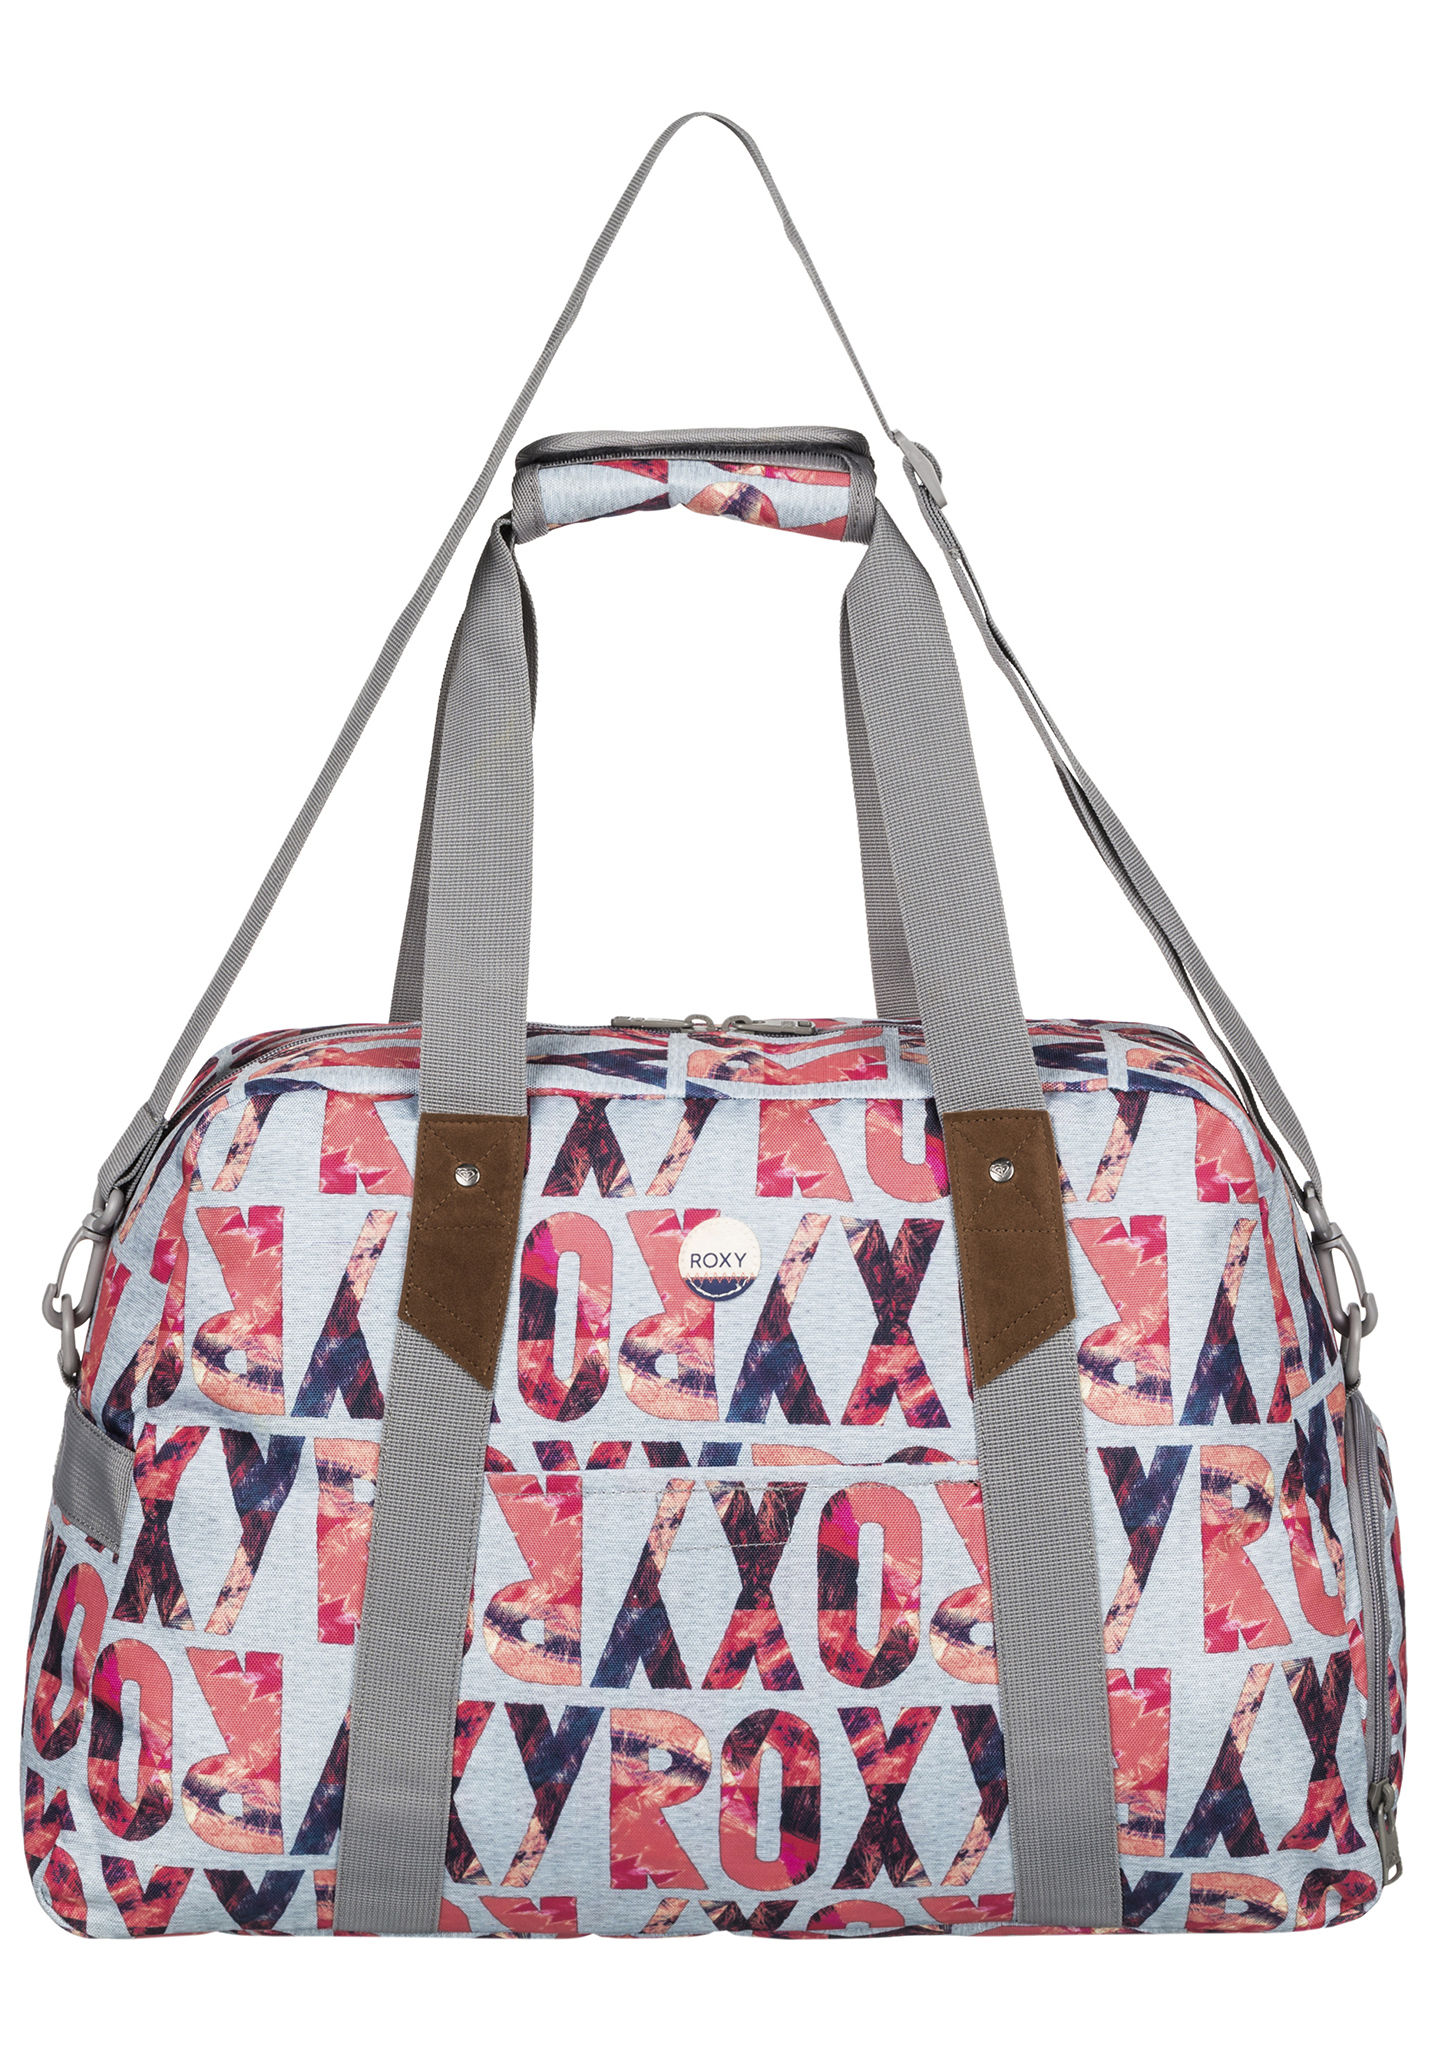 Sugar It Up - Tasche für Damen - Grau Roxy